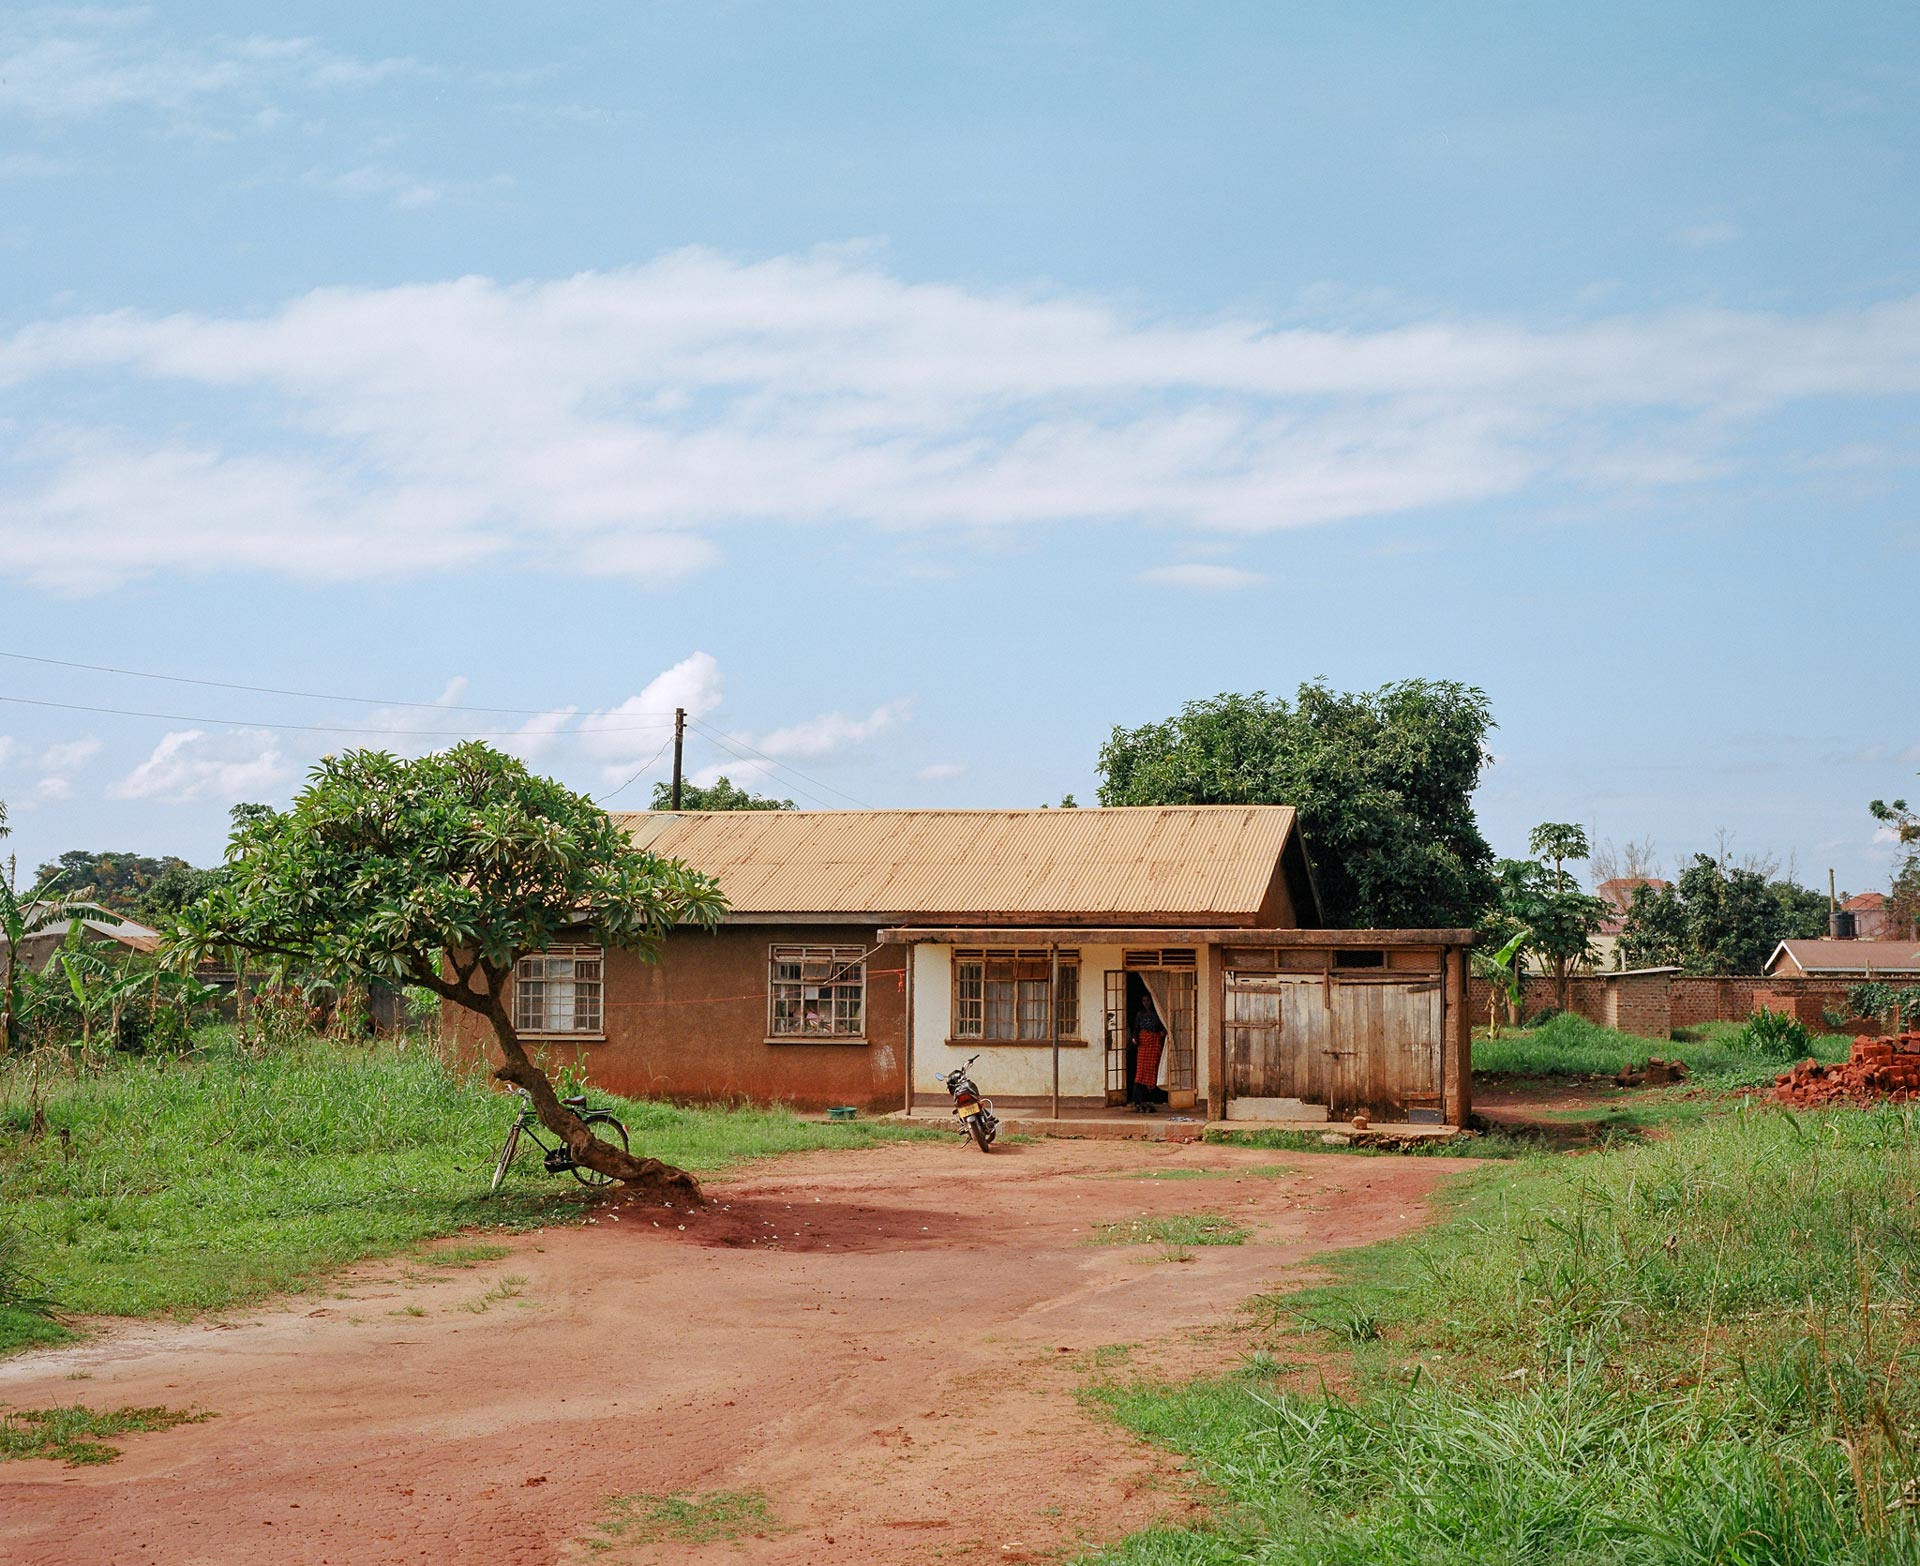 simple brown house made of dirt and metal sheets by Alexi Hobbs in Uganda for Football for Good with Sportsnet